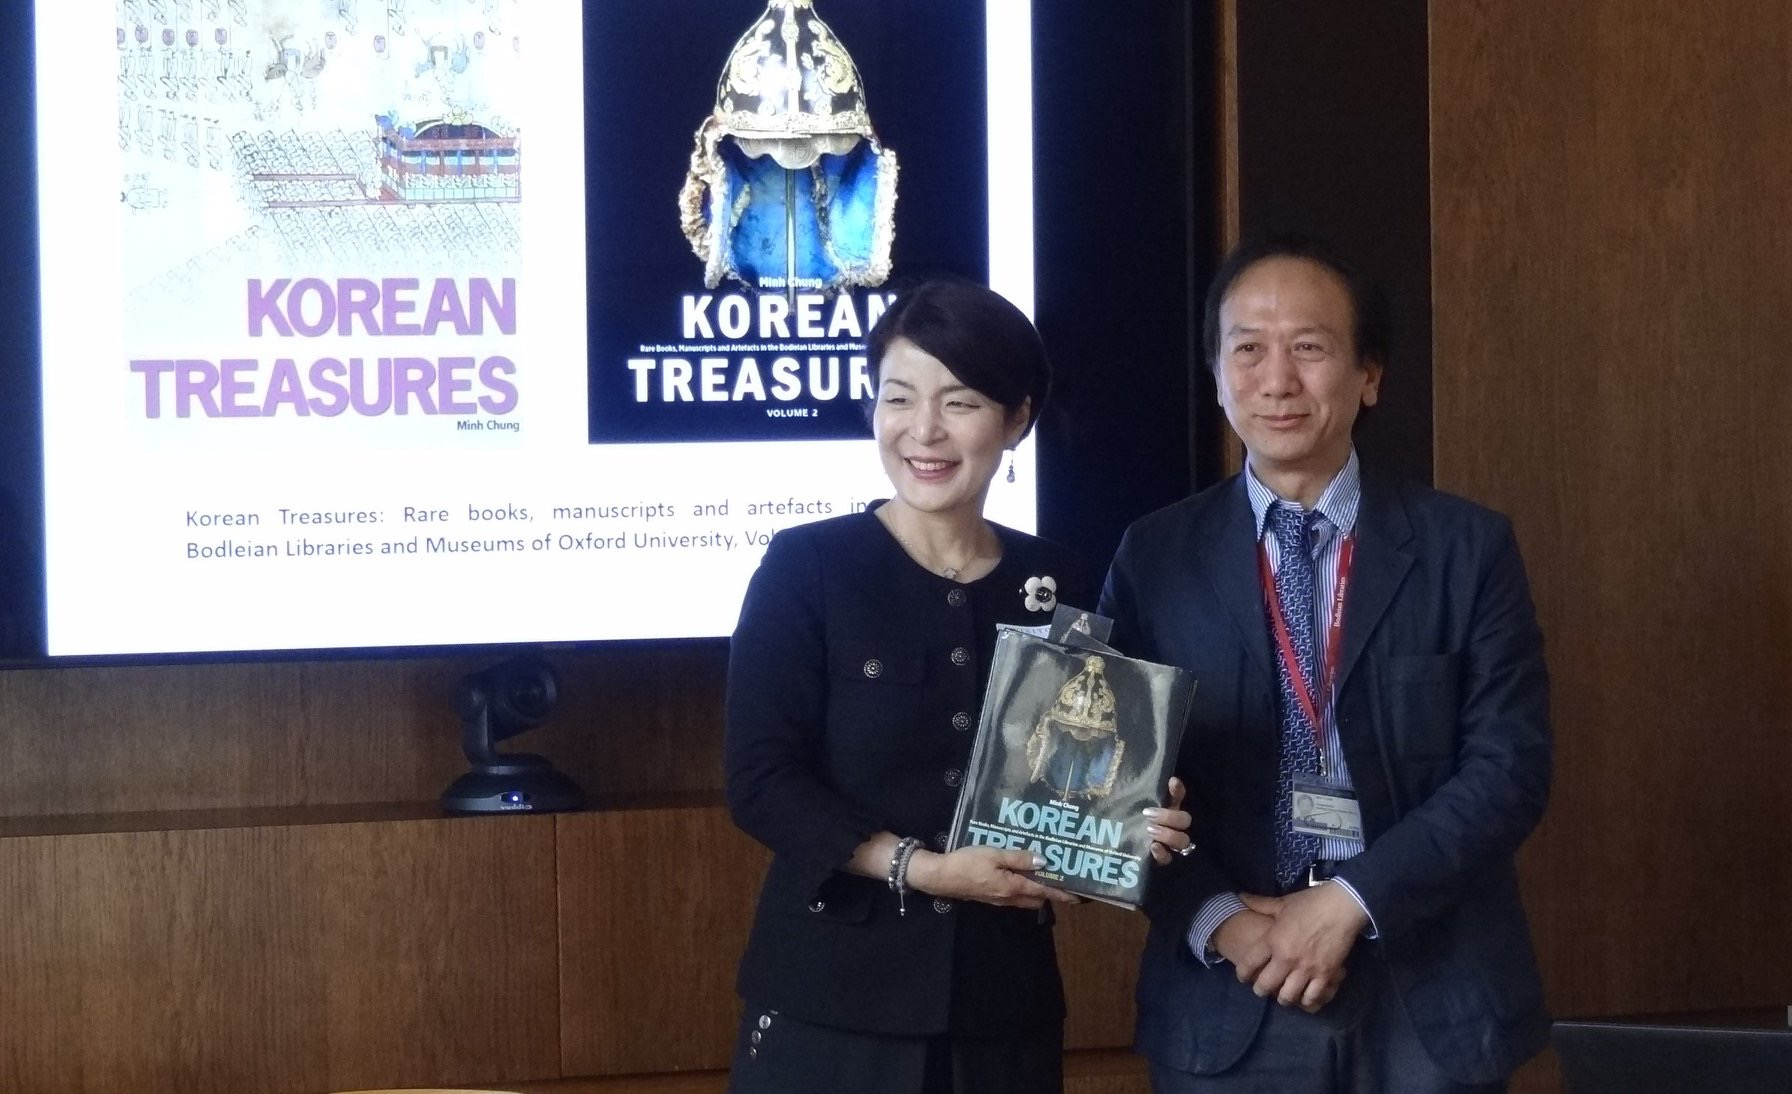 Minh Chung publishes second volume of Korean Treasures